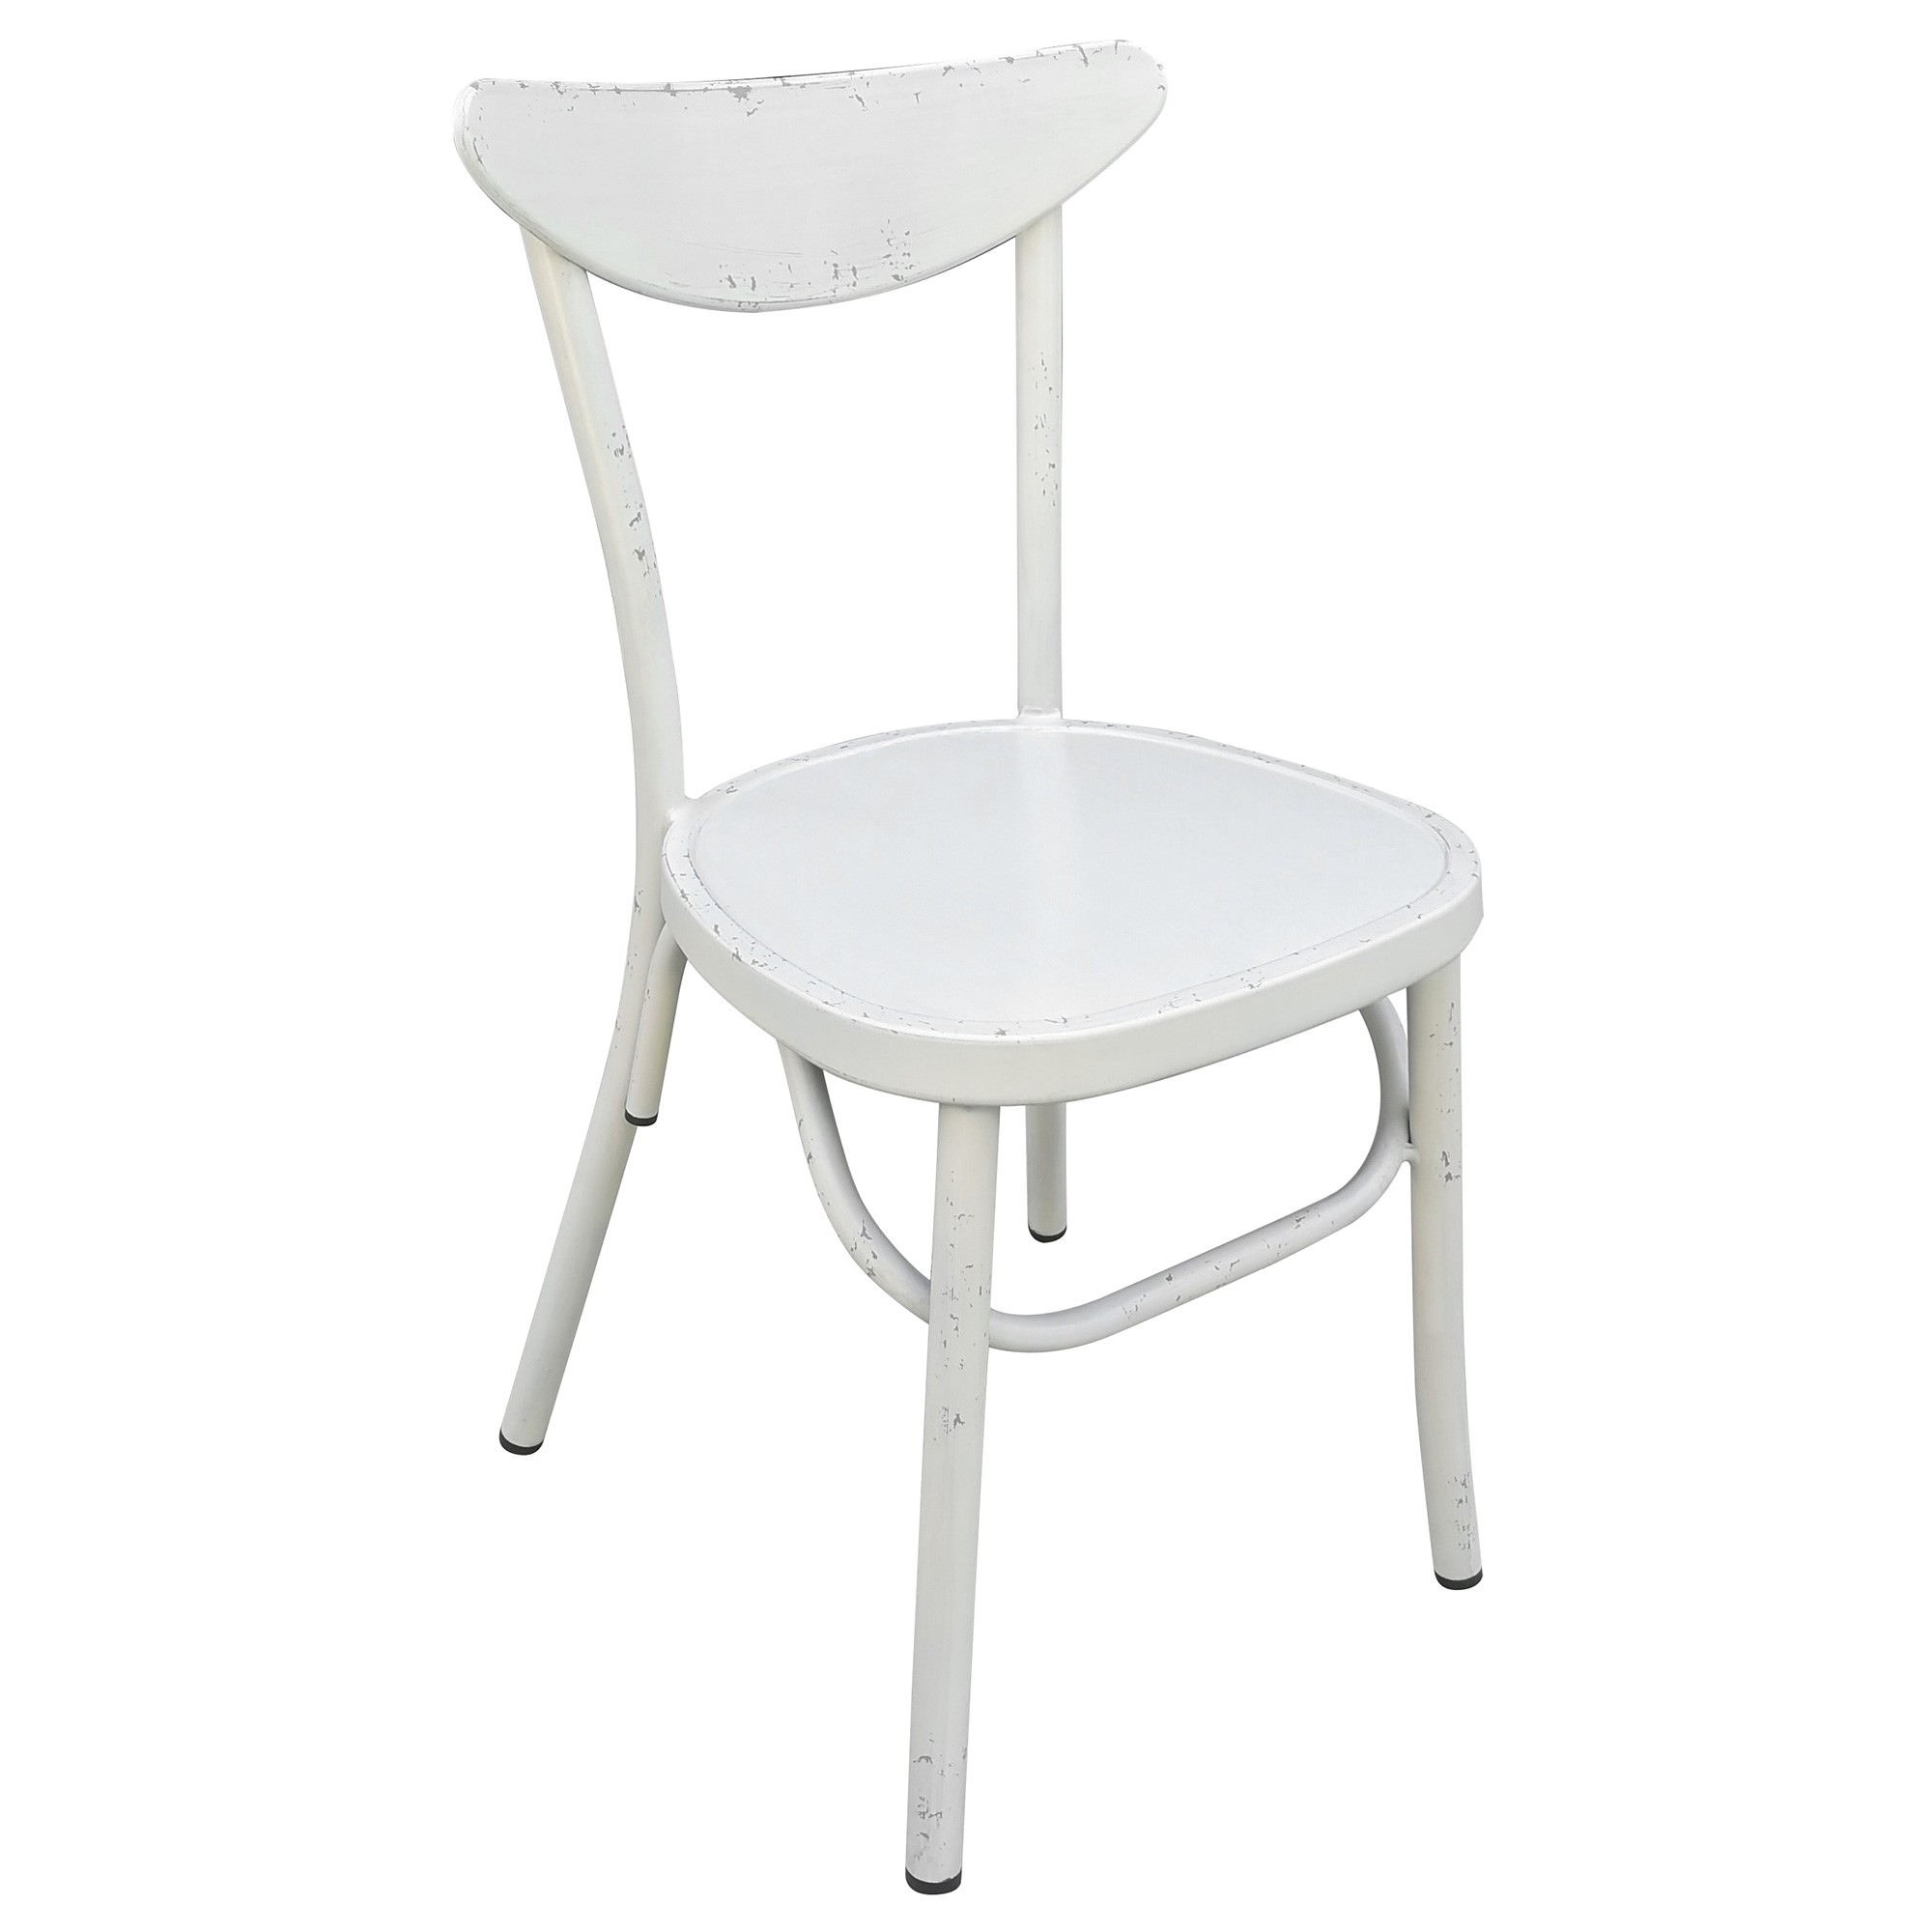 Set of 2 Luna Commercial Grade Aluminium Indoor / Outdoor Dining Chairs, Rustic White